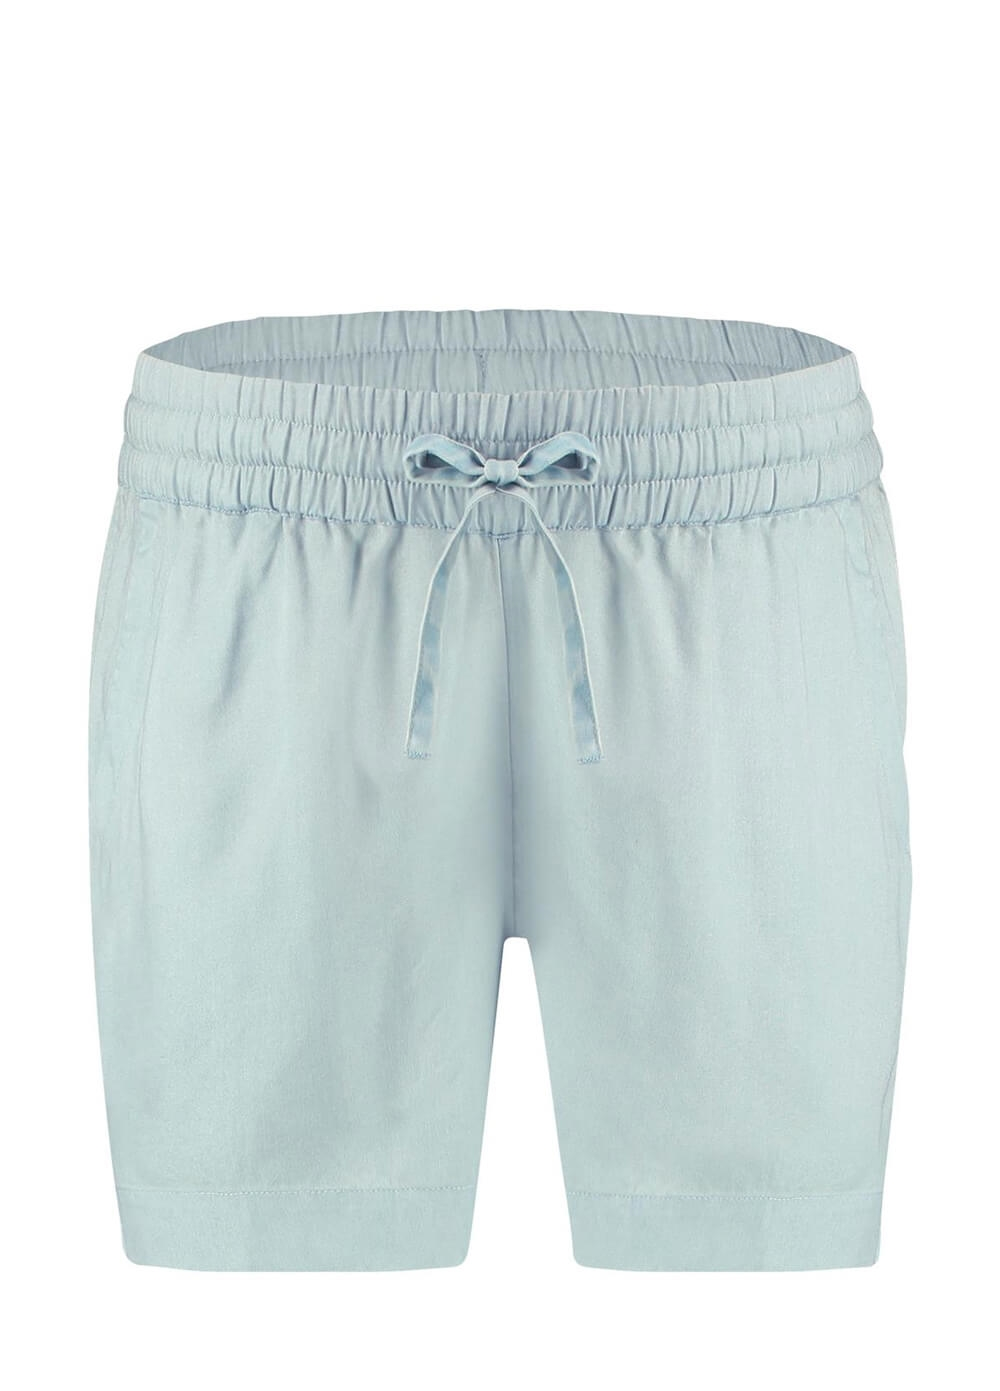 Queen mum - Forget-me-not Blue Maternity Shorts | Queen Bee